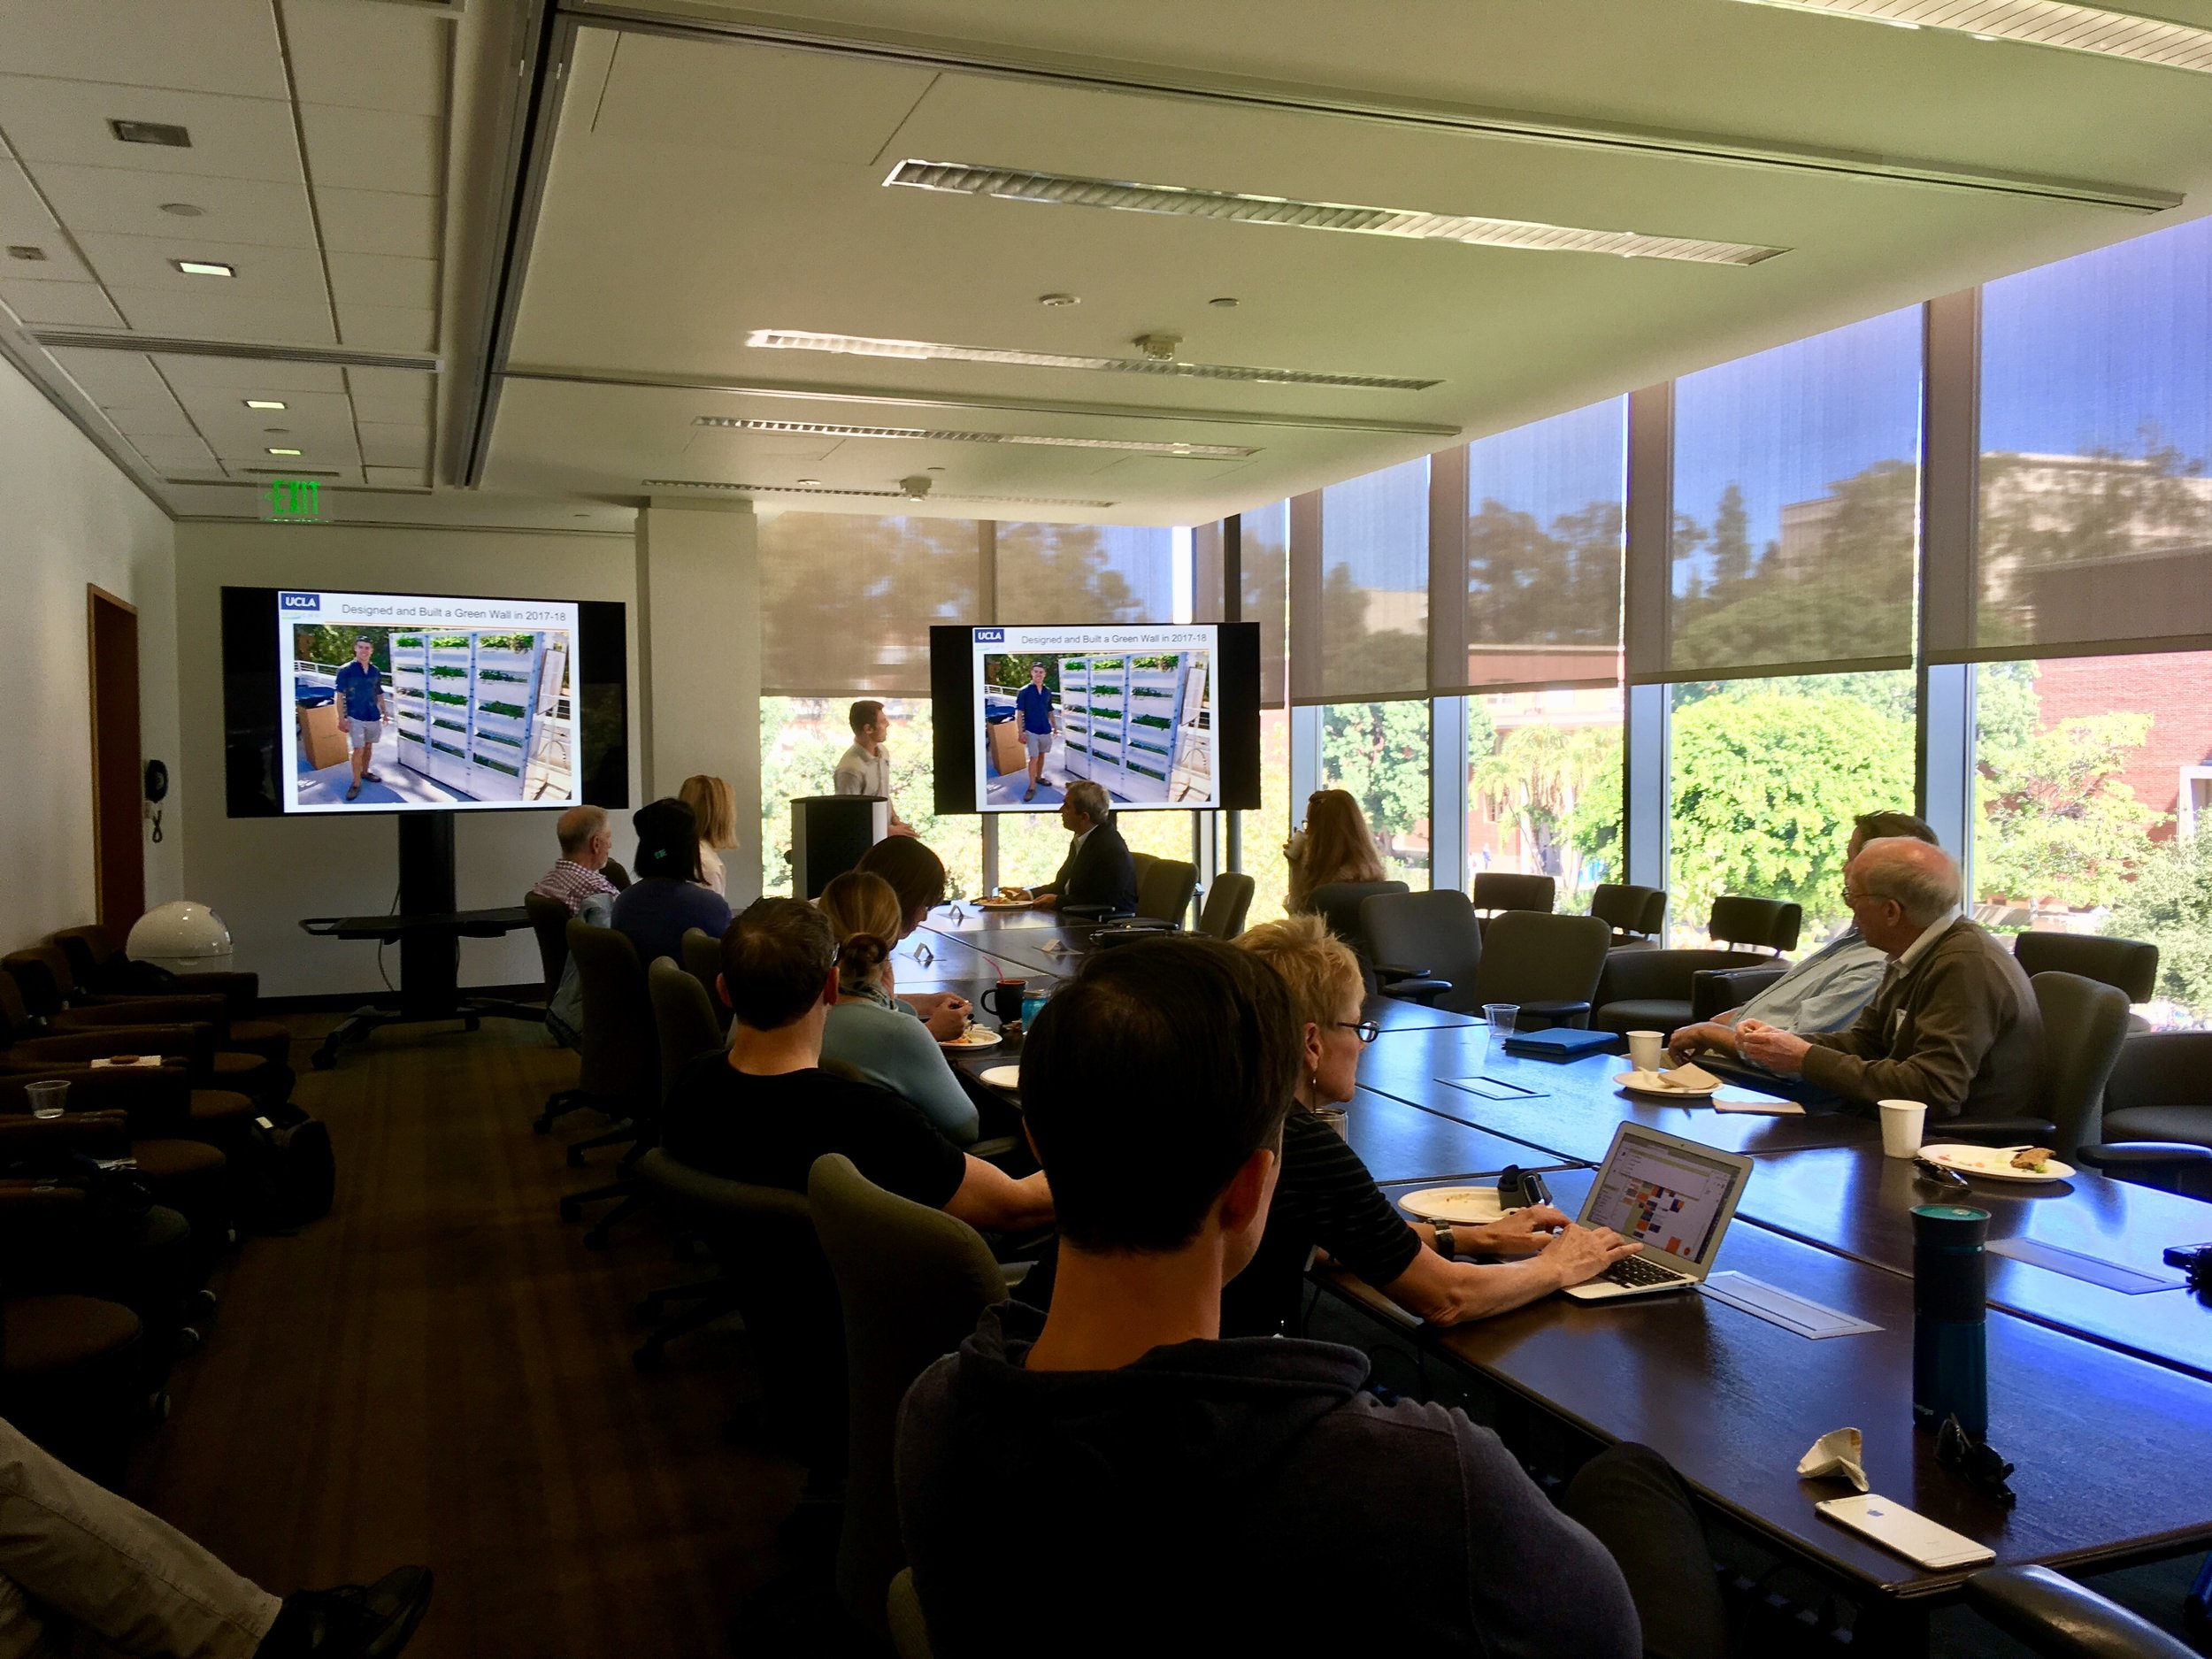 October 16, 2018: Riley Kuffner (Bruin Home Solutions) hydroponics presentation at INFEWS Faculty Meeting